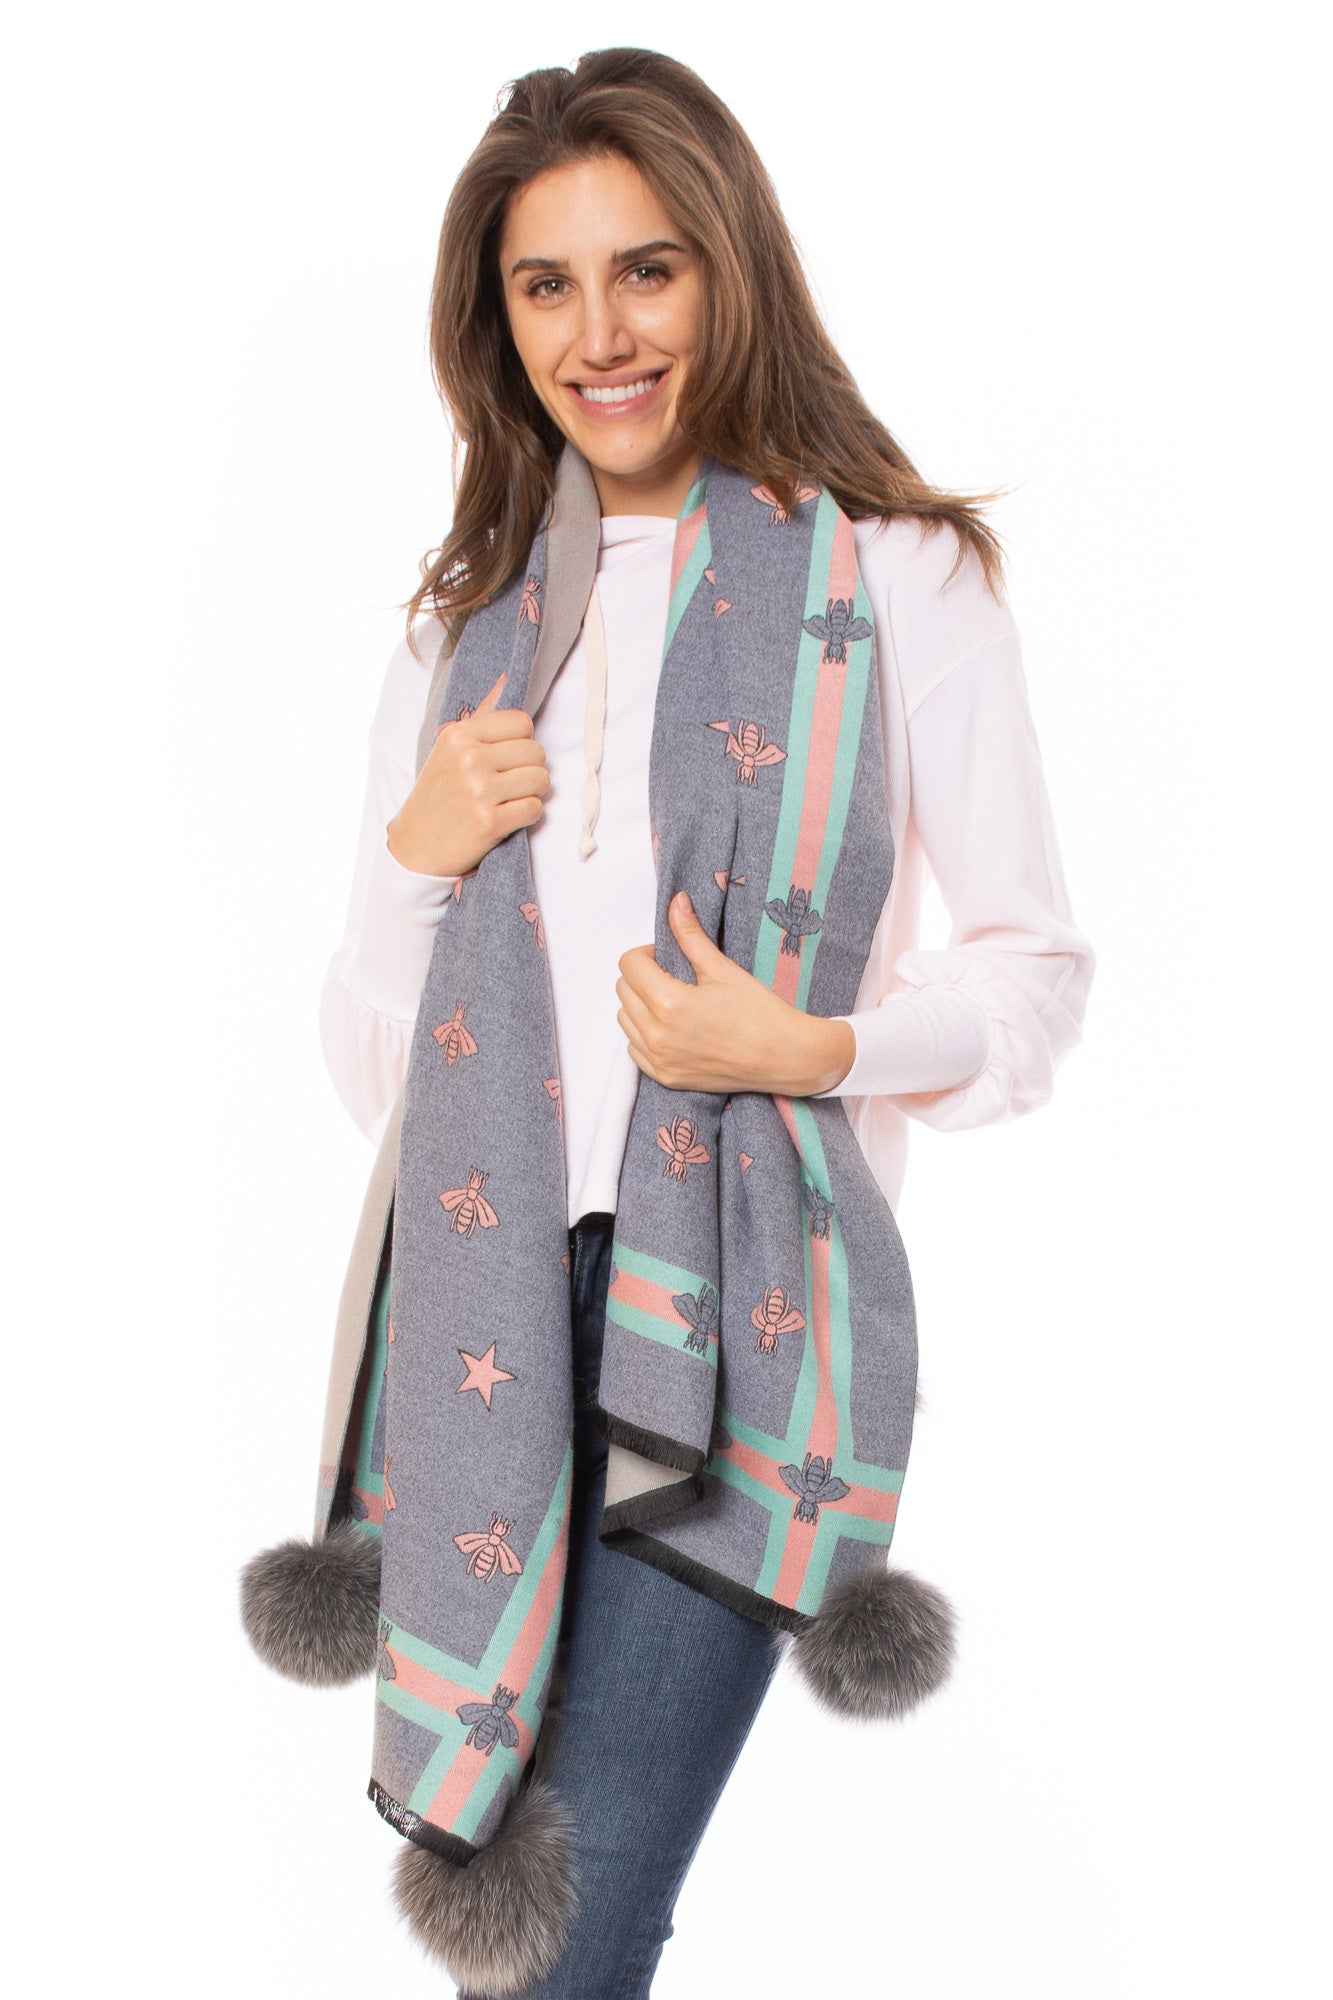 Mitchie's - Bumble Bee Scarf W/Pom-Pom (SC0704, Grey)